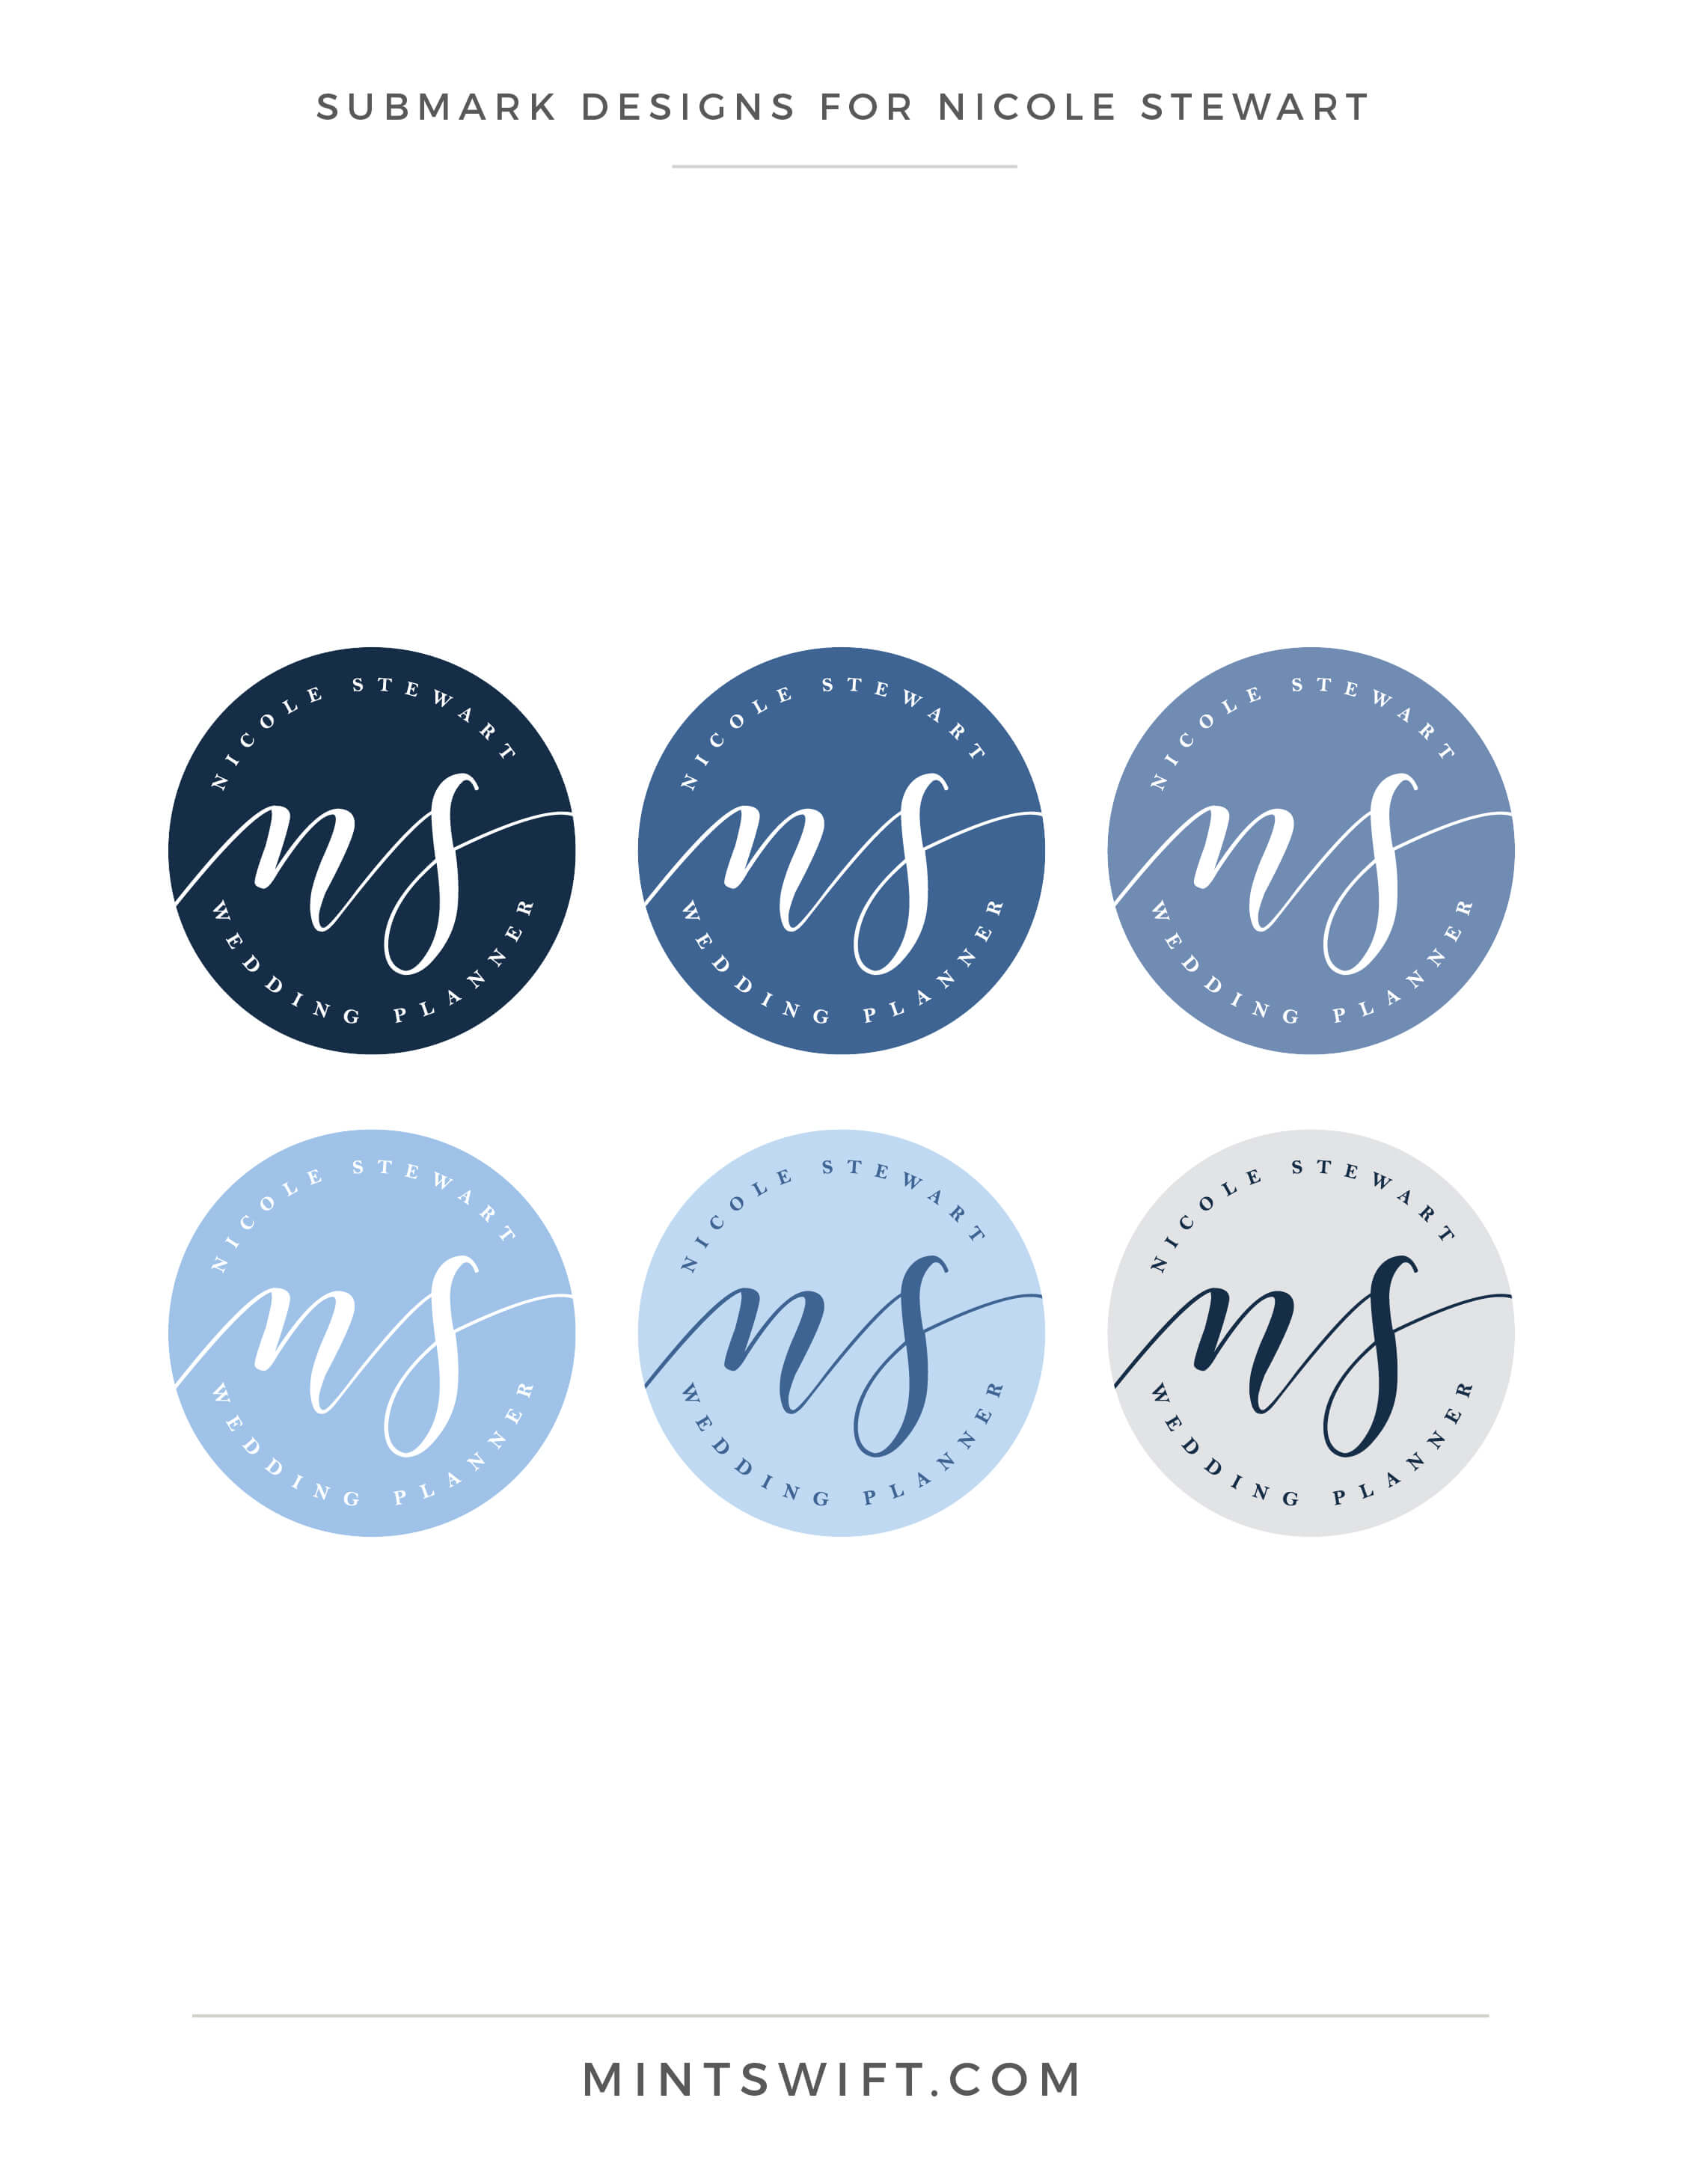 Nicole Stewart - Submark Designs - Brand Design Package - MintSwift